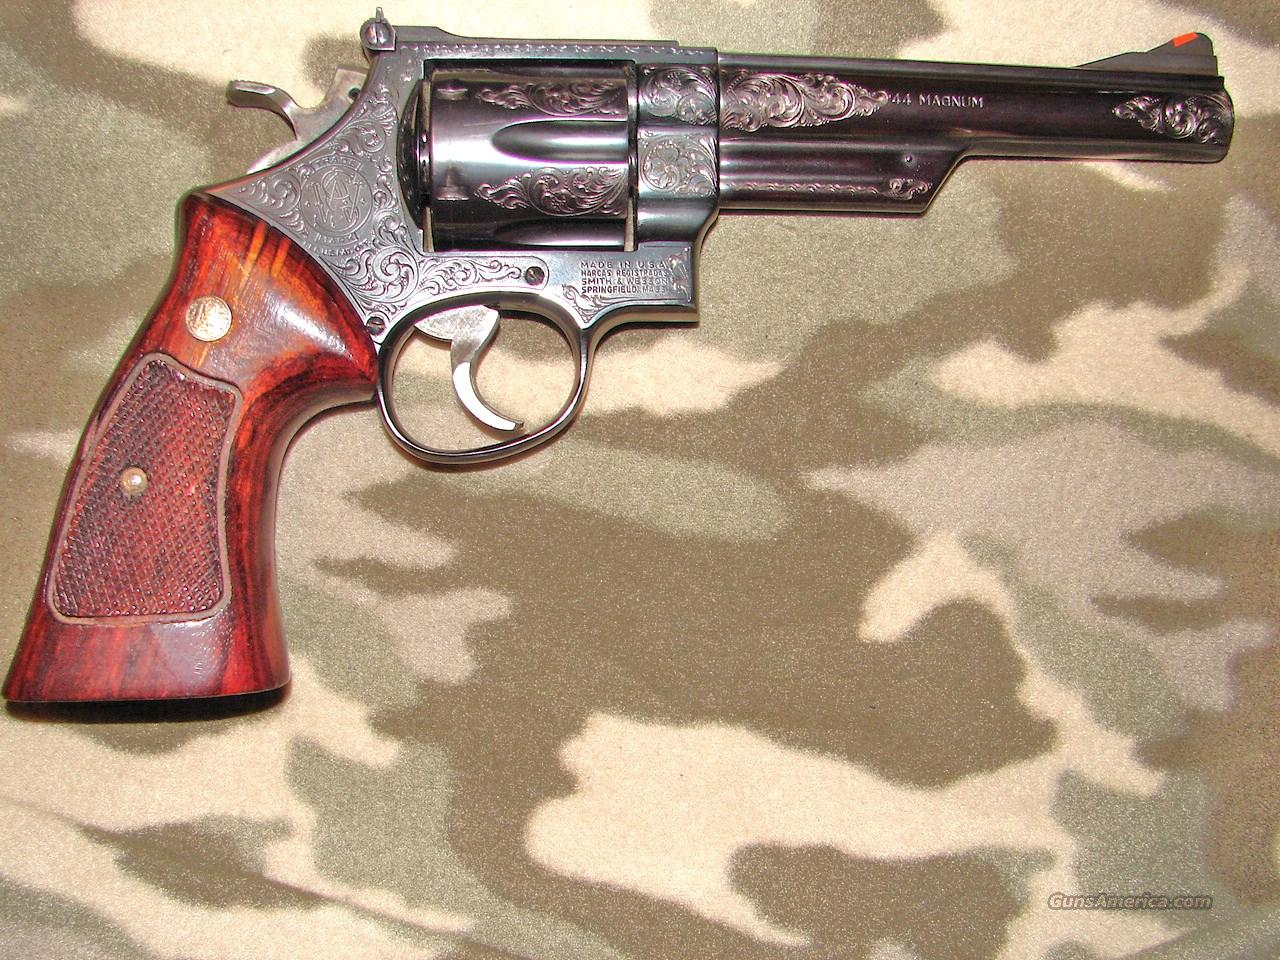 Smith & Wesson 29-3 Eng.  Guns > Pistols > Smith & Wesson Revolvers > Full Frame Revolver